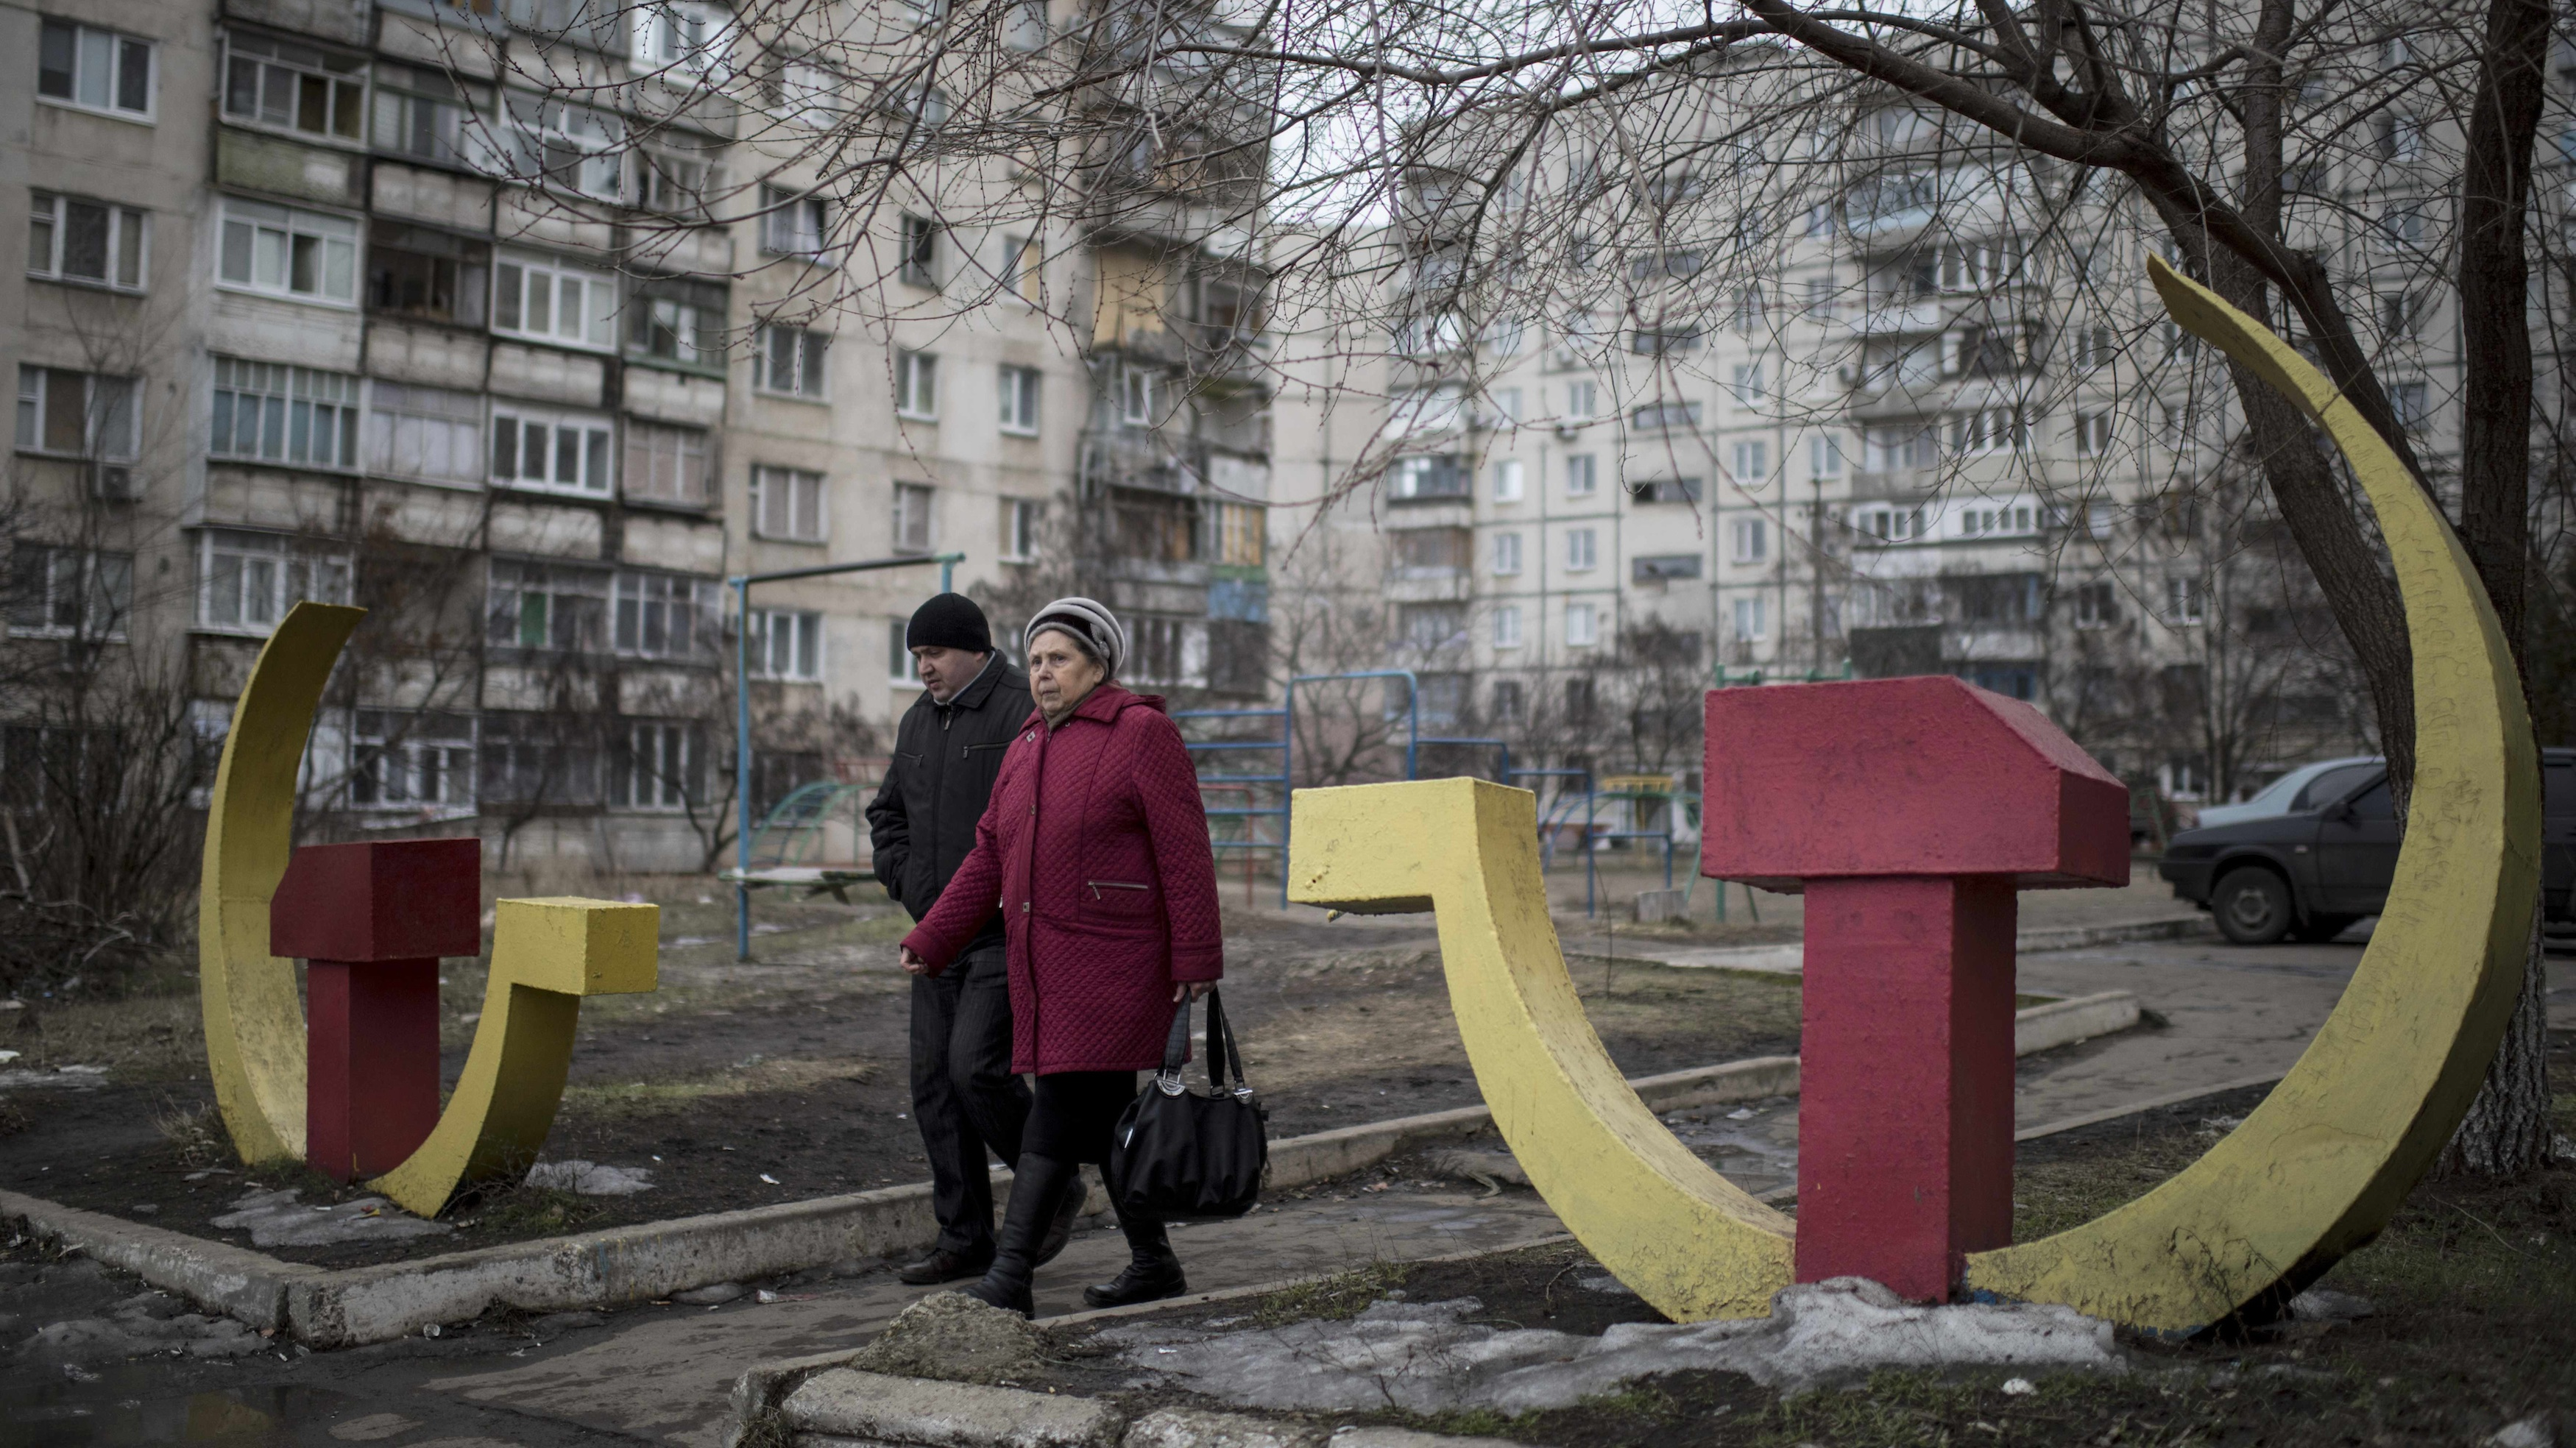 Pivoting away from Russia means Europe must reckon with Ukraine's systemic human rights issues.